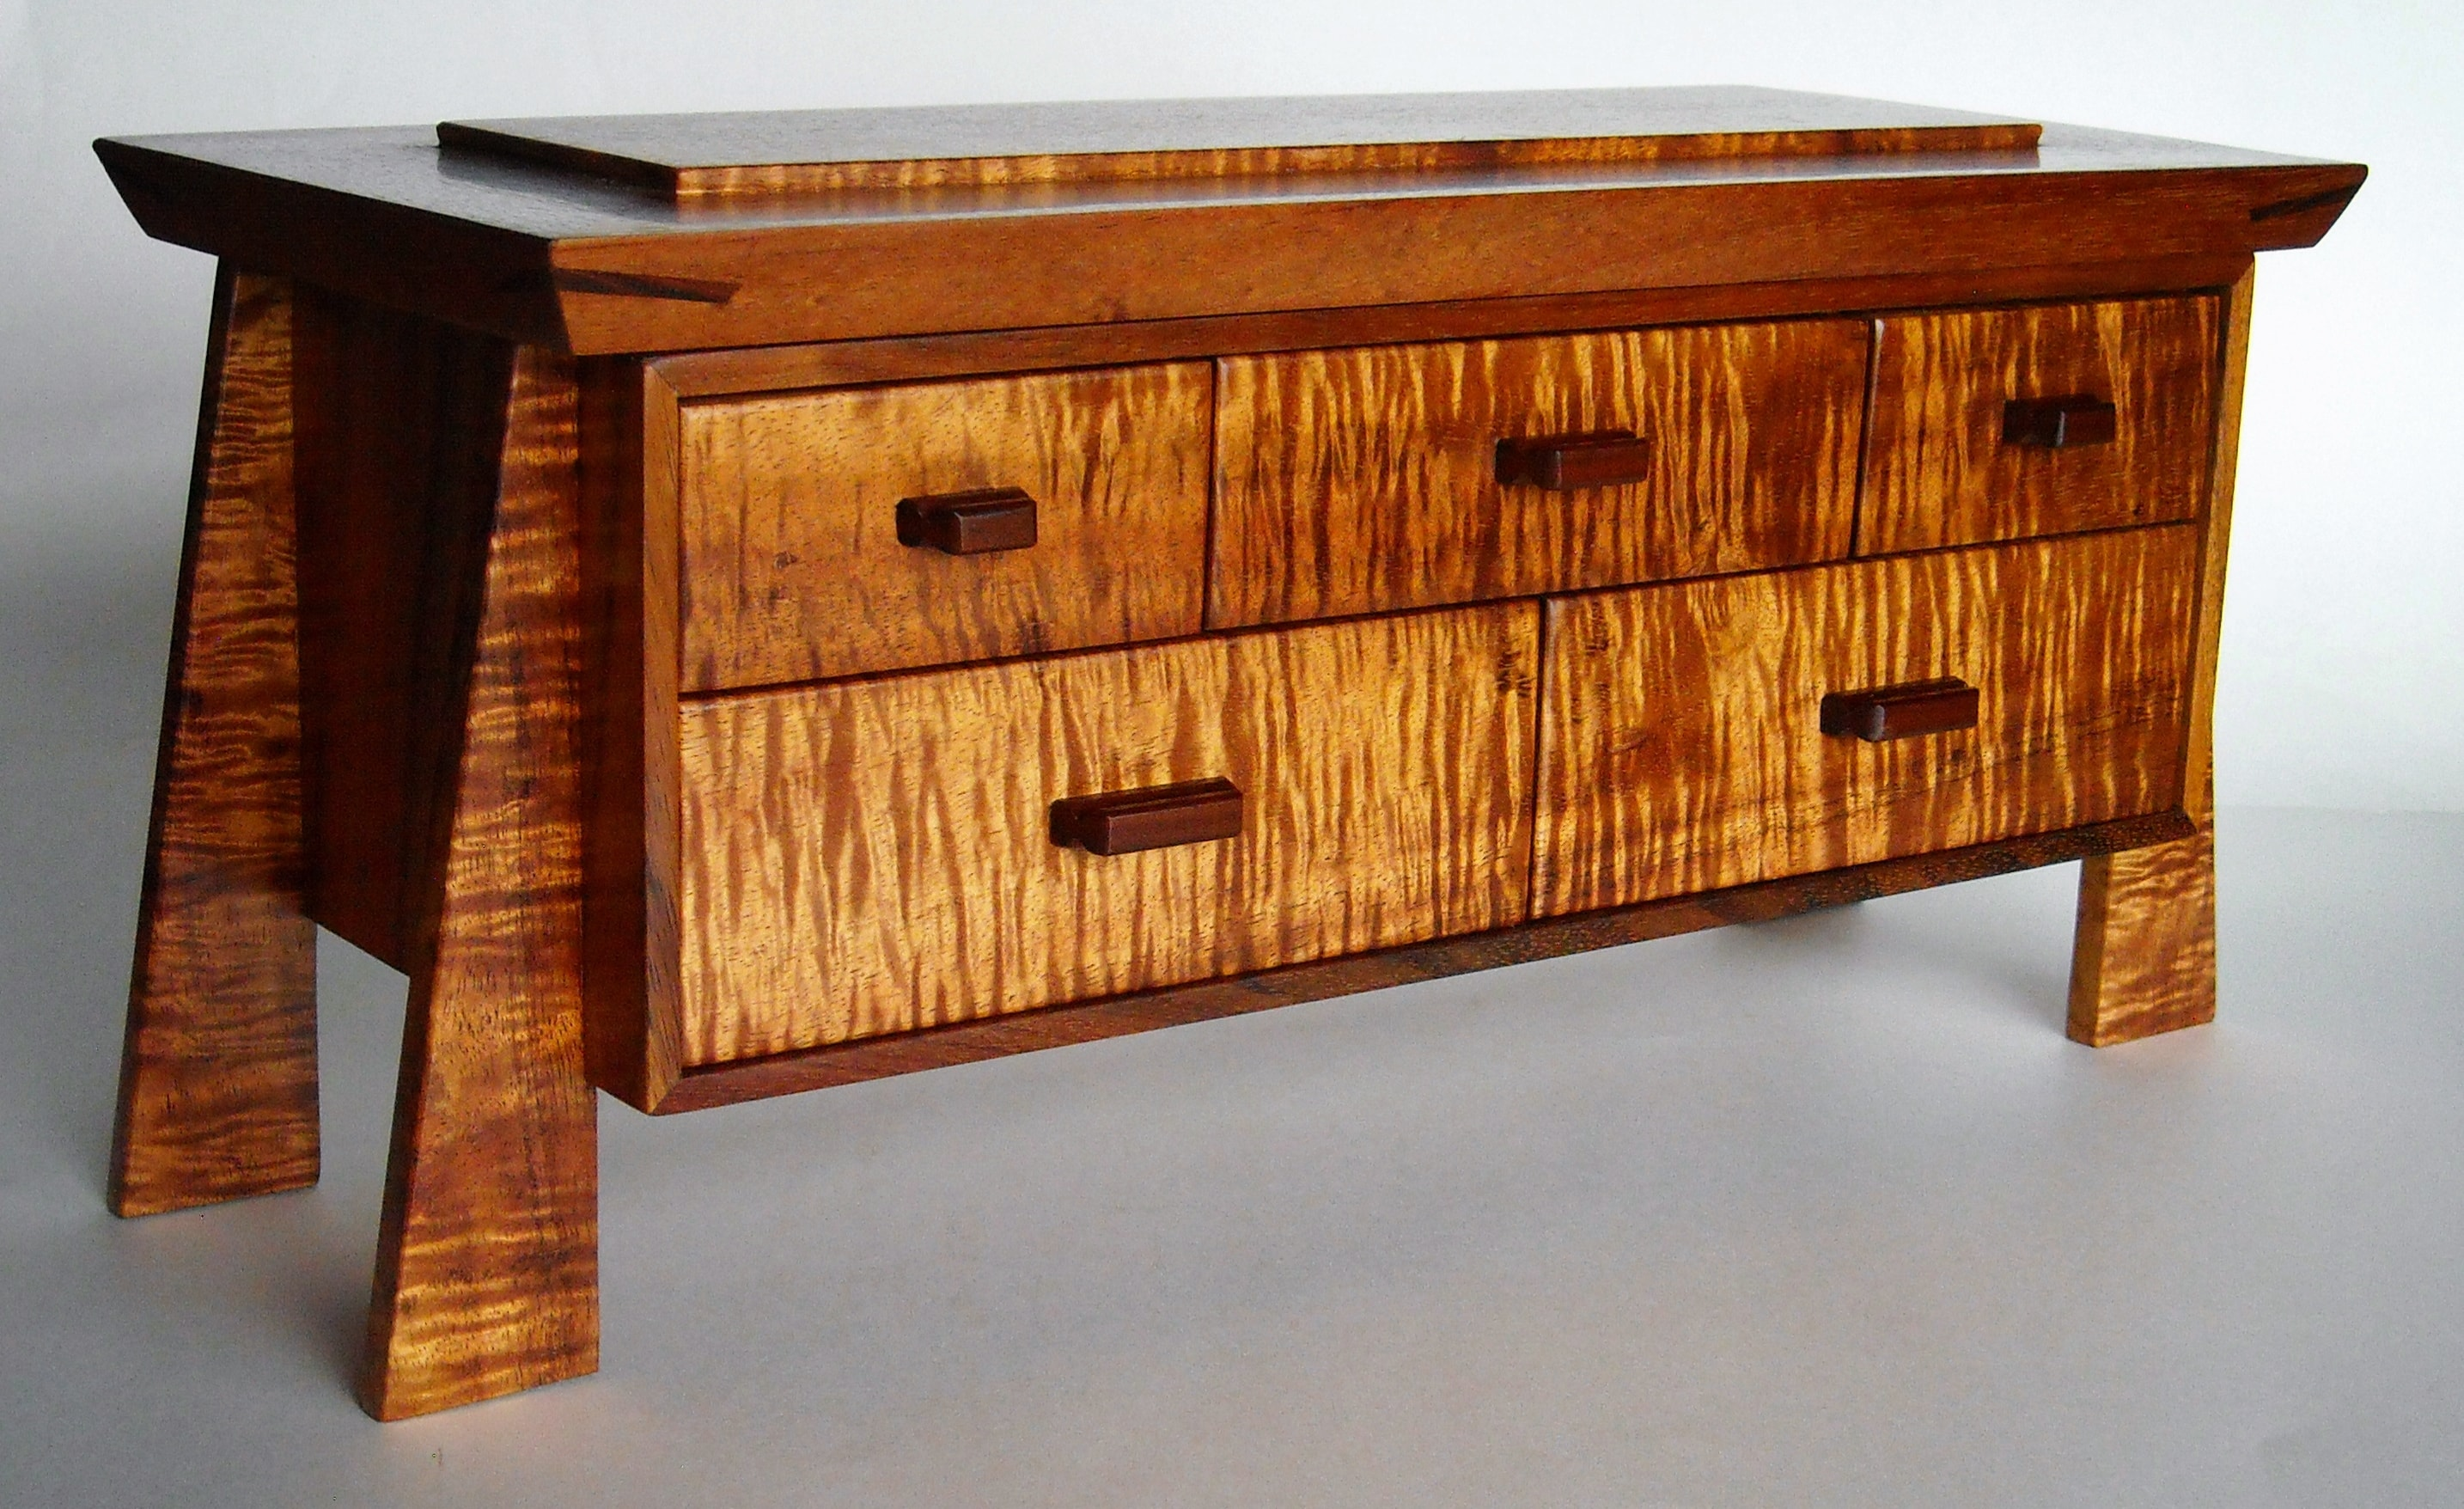 Koa Wood Jewelry Dresser